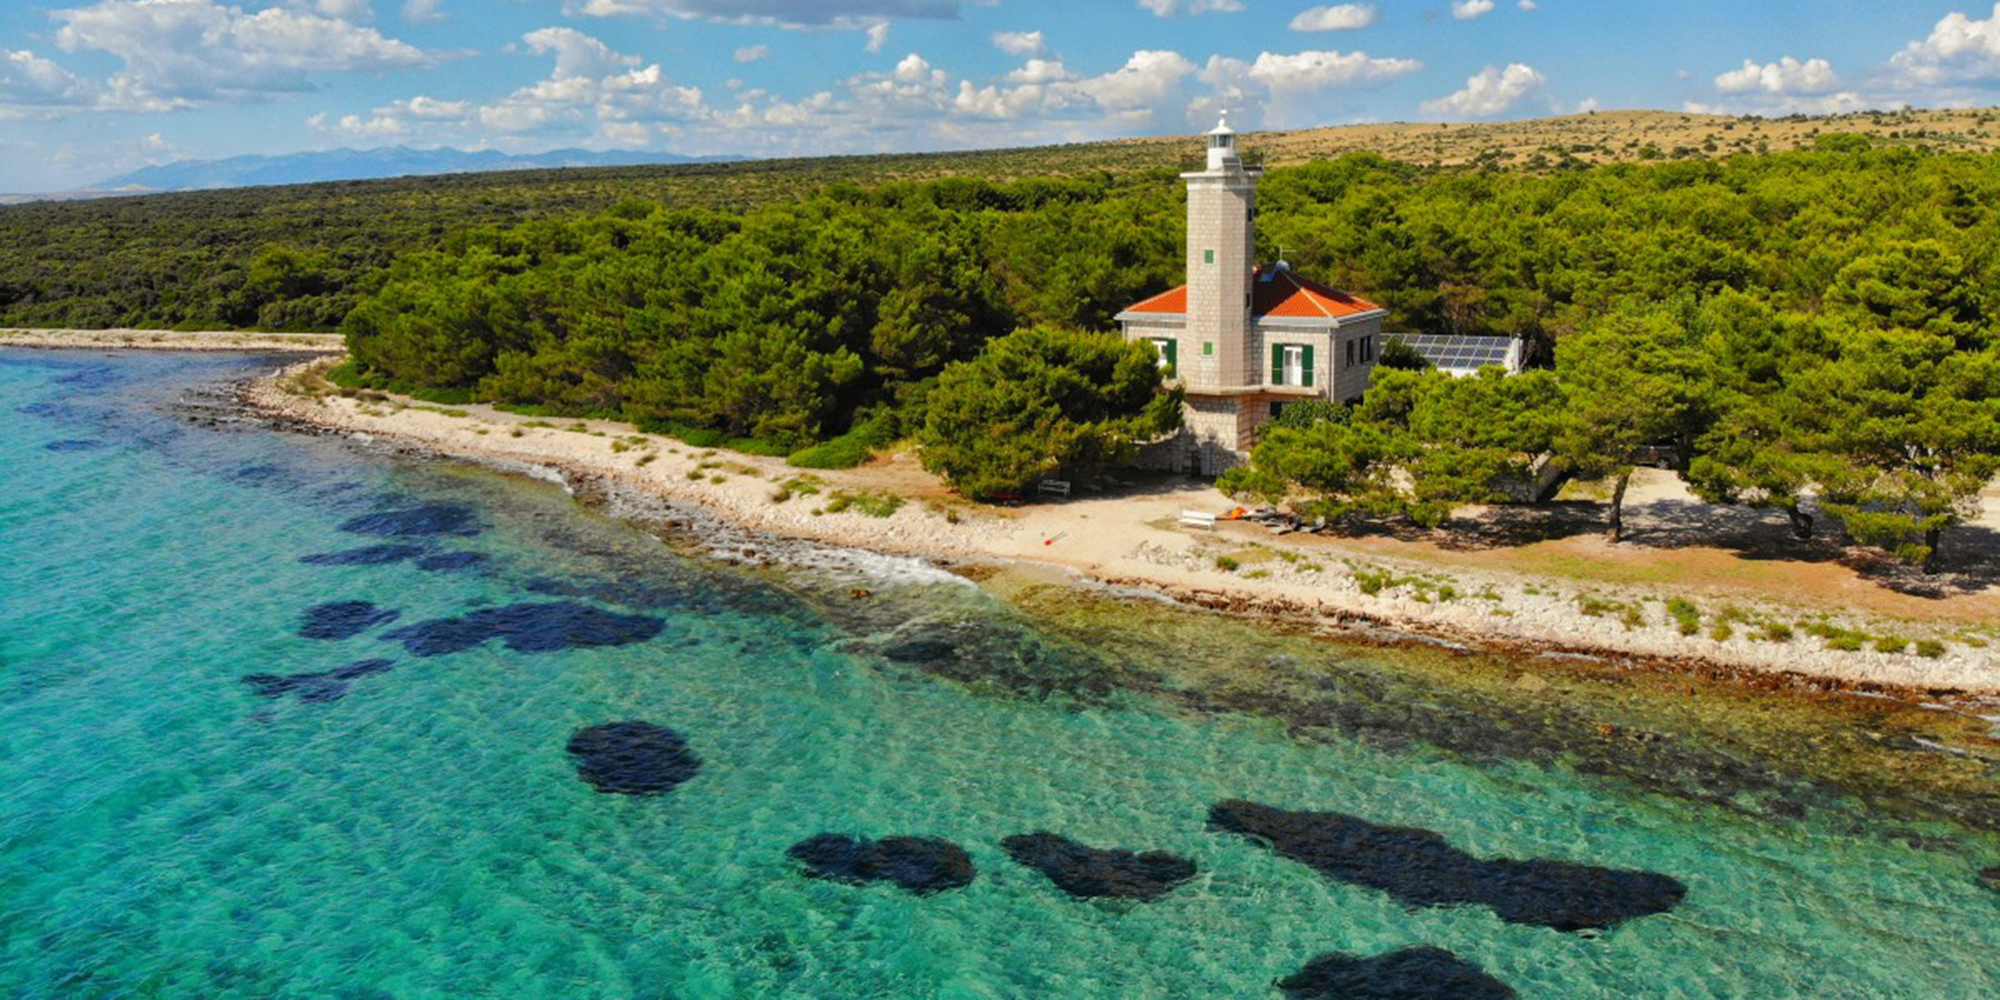 Croatia is one of the best destinations for a late summer holiday